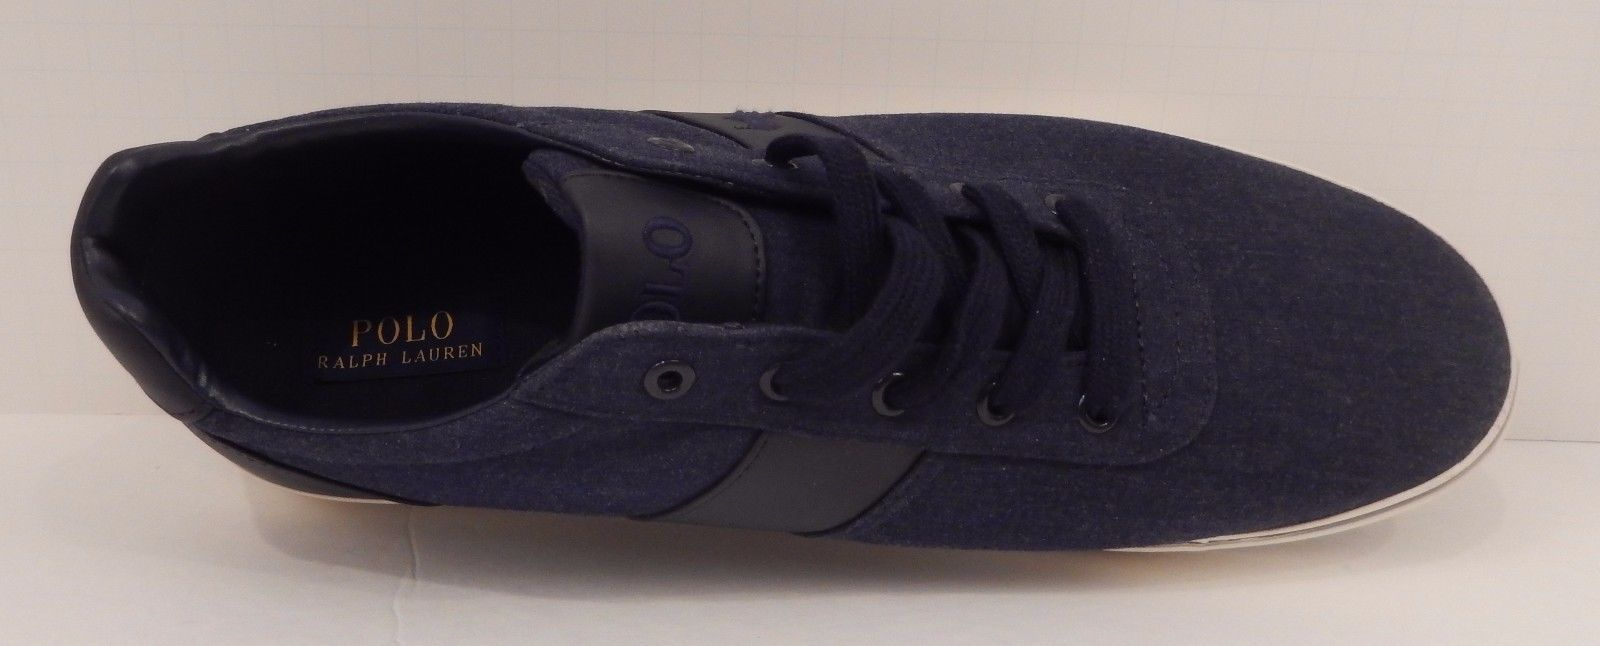 GENUINE POLO RALPH LAUREN MENS SIZE 14 D DARK BLUE  FASHION SNEAKER SHOE HANFORD